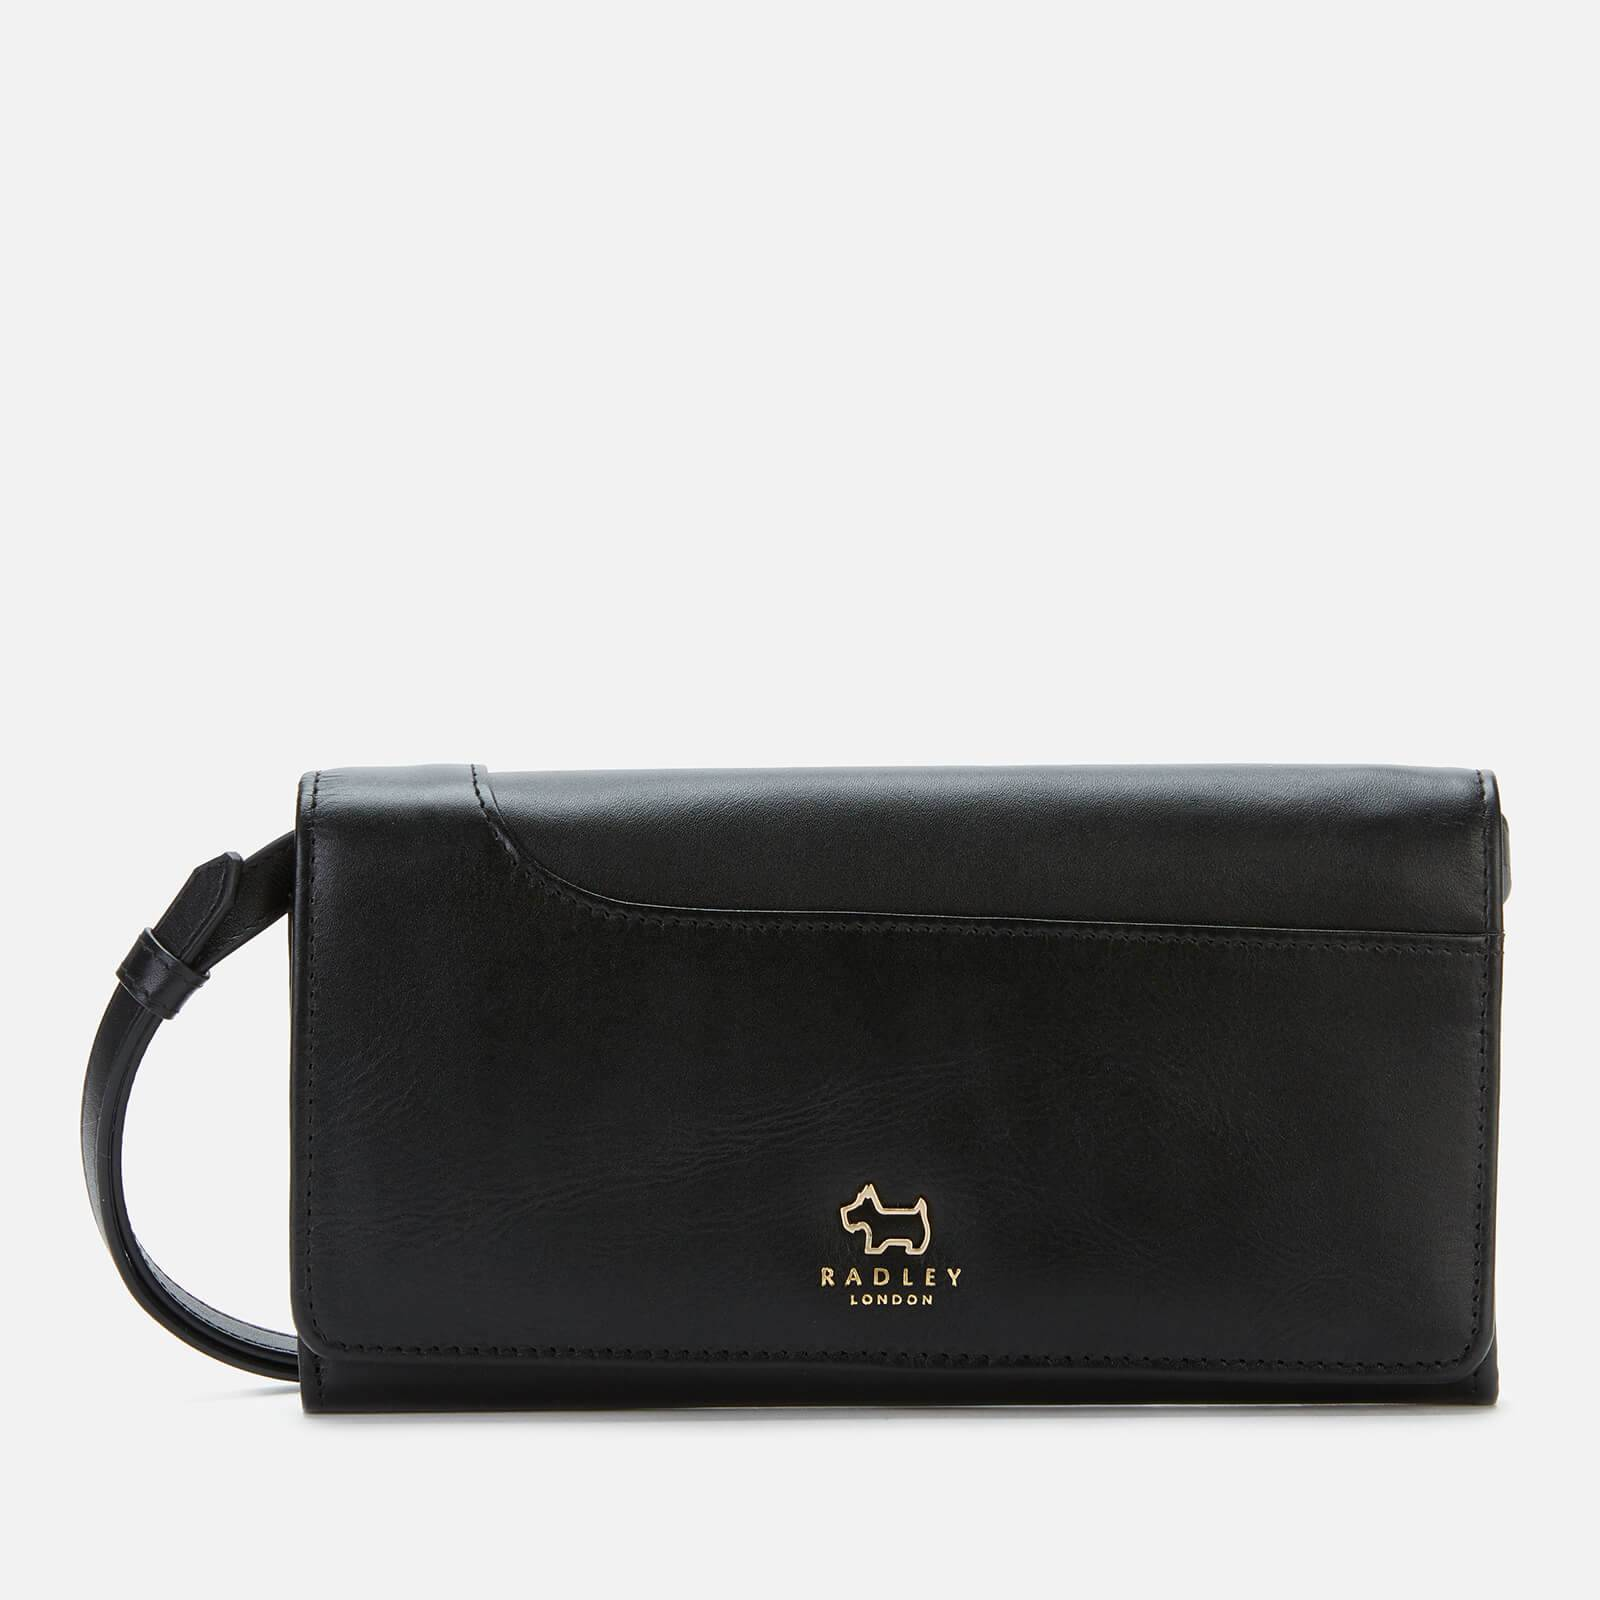 Radley Women's Pockets Large Phone Cross Body Bag - Black